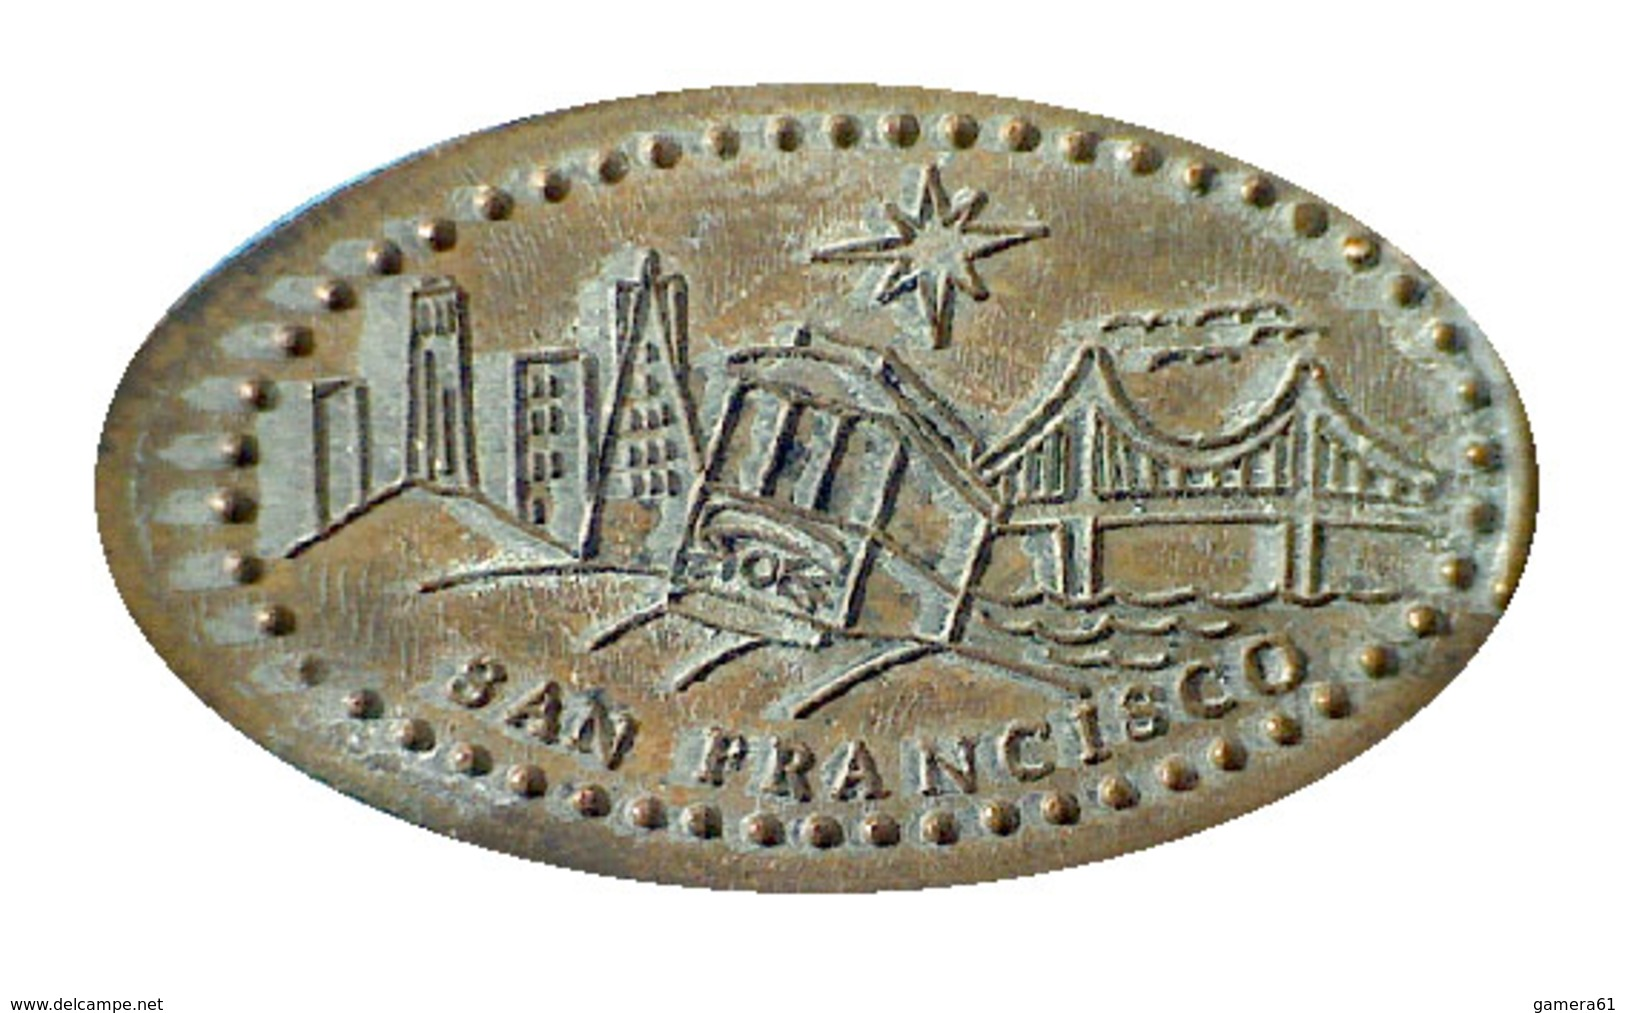 04582 GETTONE TOKEN JETON ELONGATED RELATED TRANSPORT TRAMWAY SAN FRANCISCO - Elongated Coins